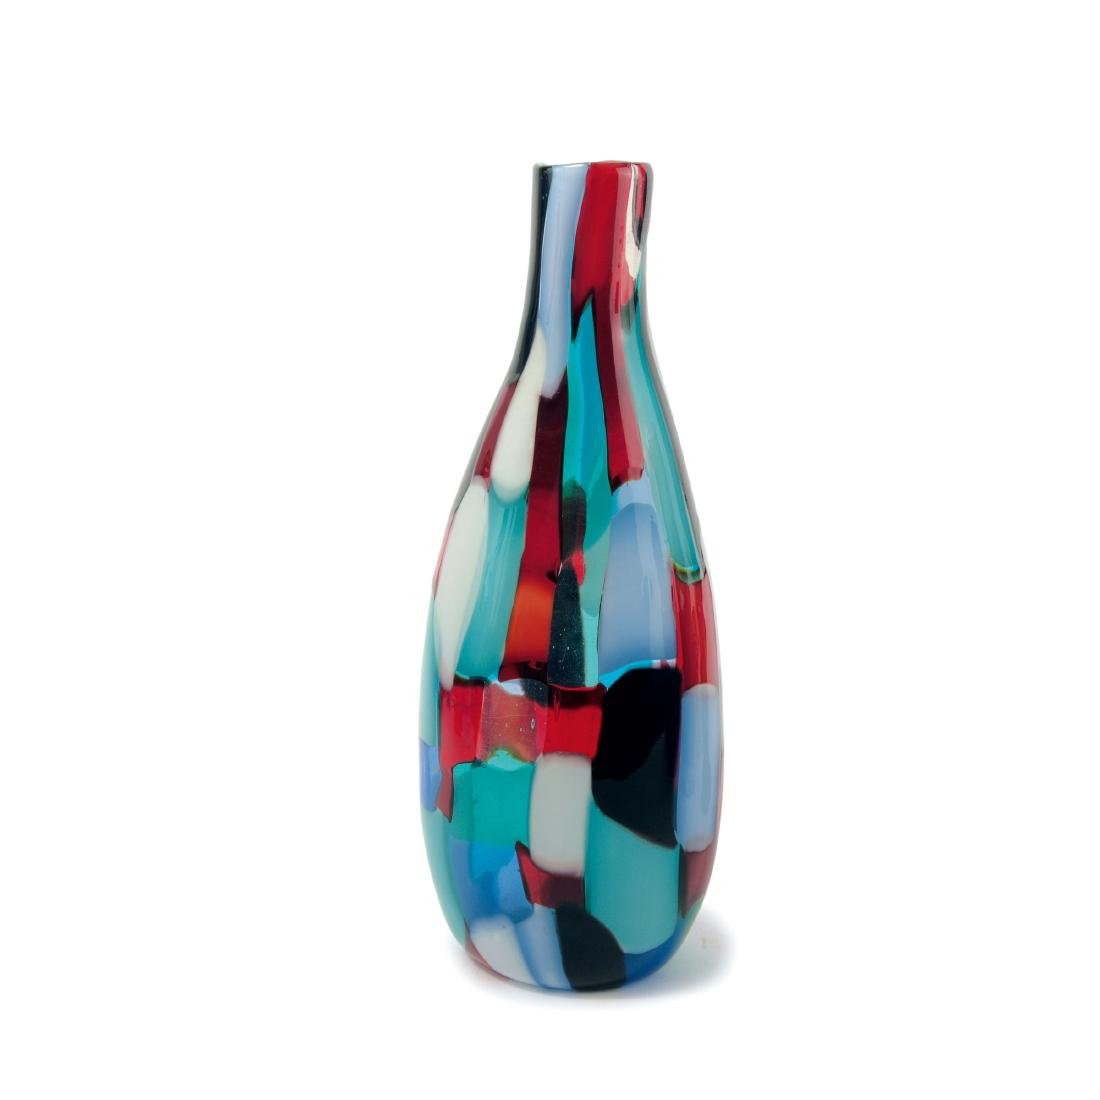 Bottle-shaped 'Pezzato' vase, c1950